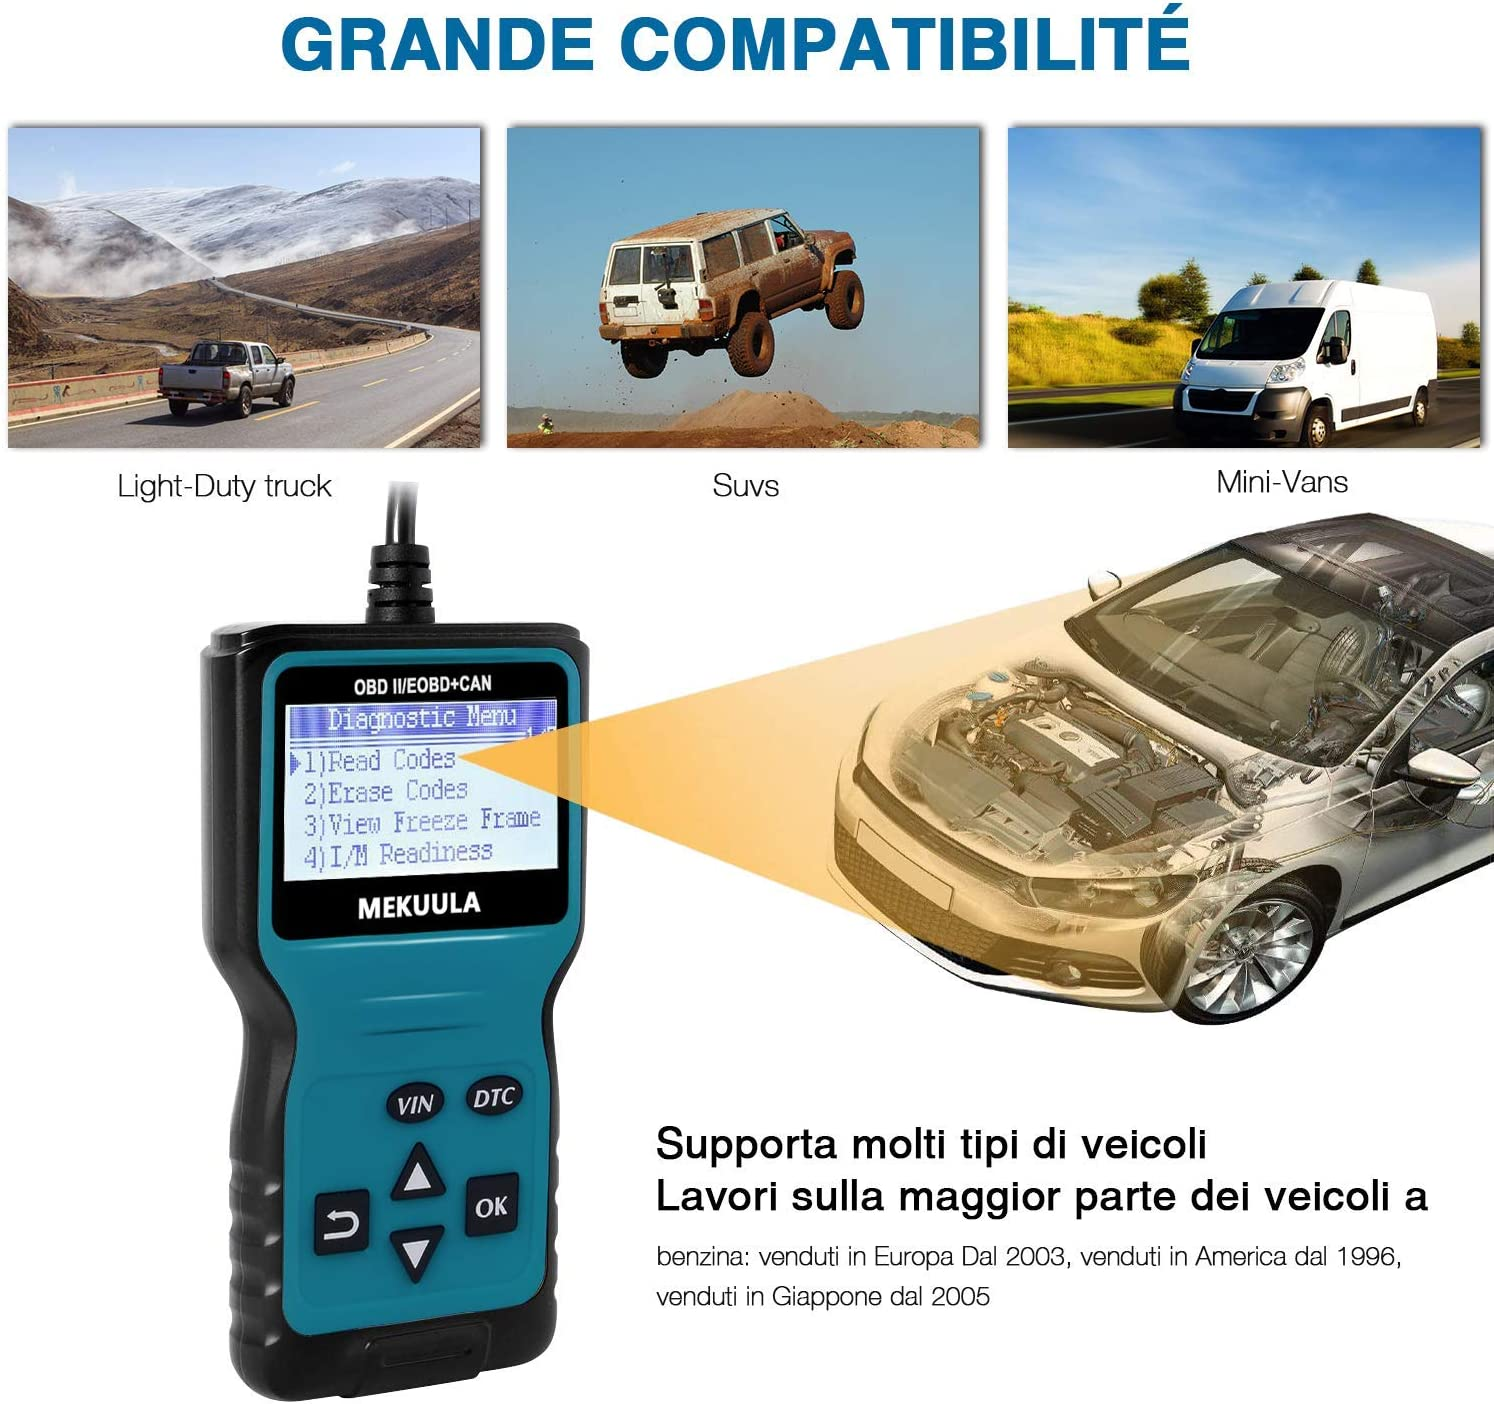 Obdii Car Engine Code Reader OBD2 Scanner CAN Auto Diagnostic Scan Tool Verifica Engine Light Display veicolo Realtime Curve V310